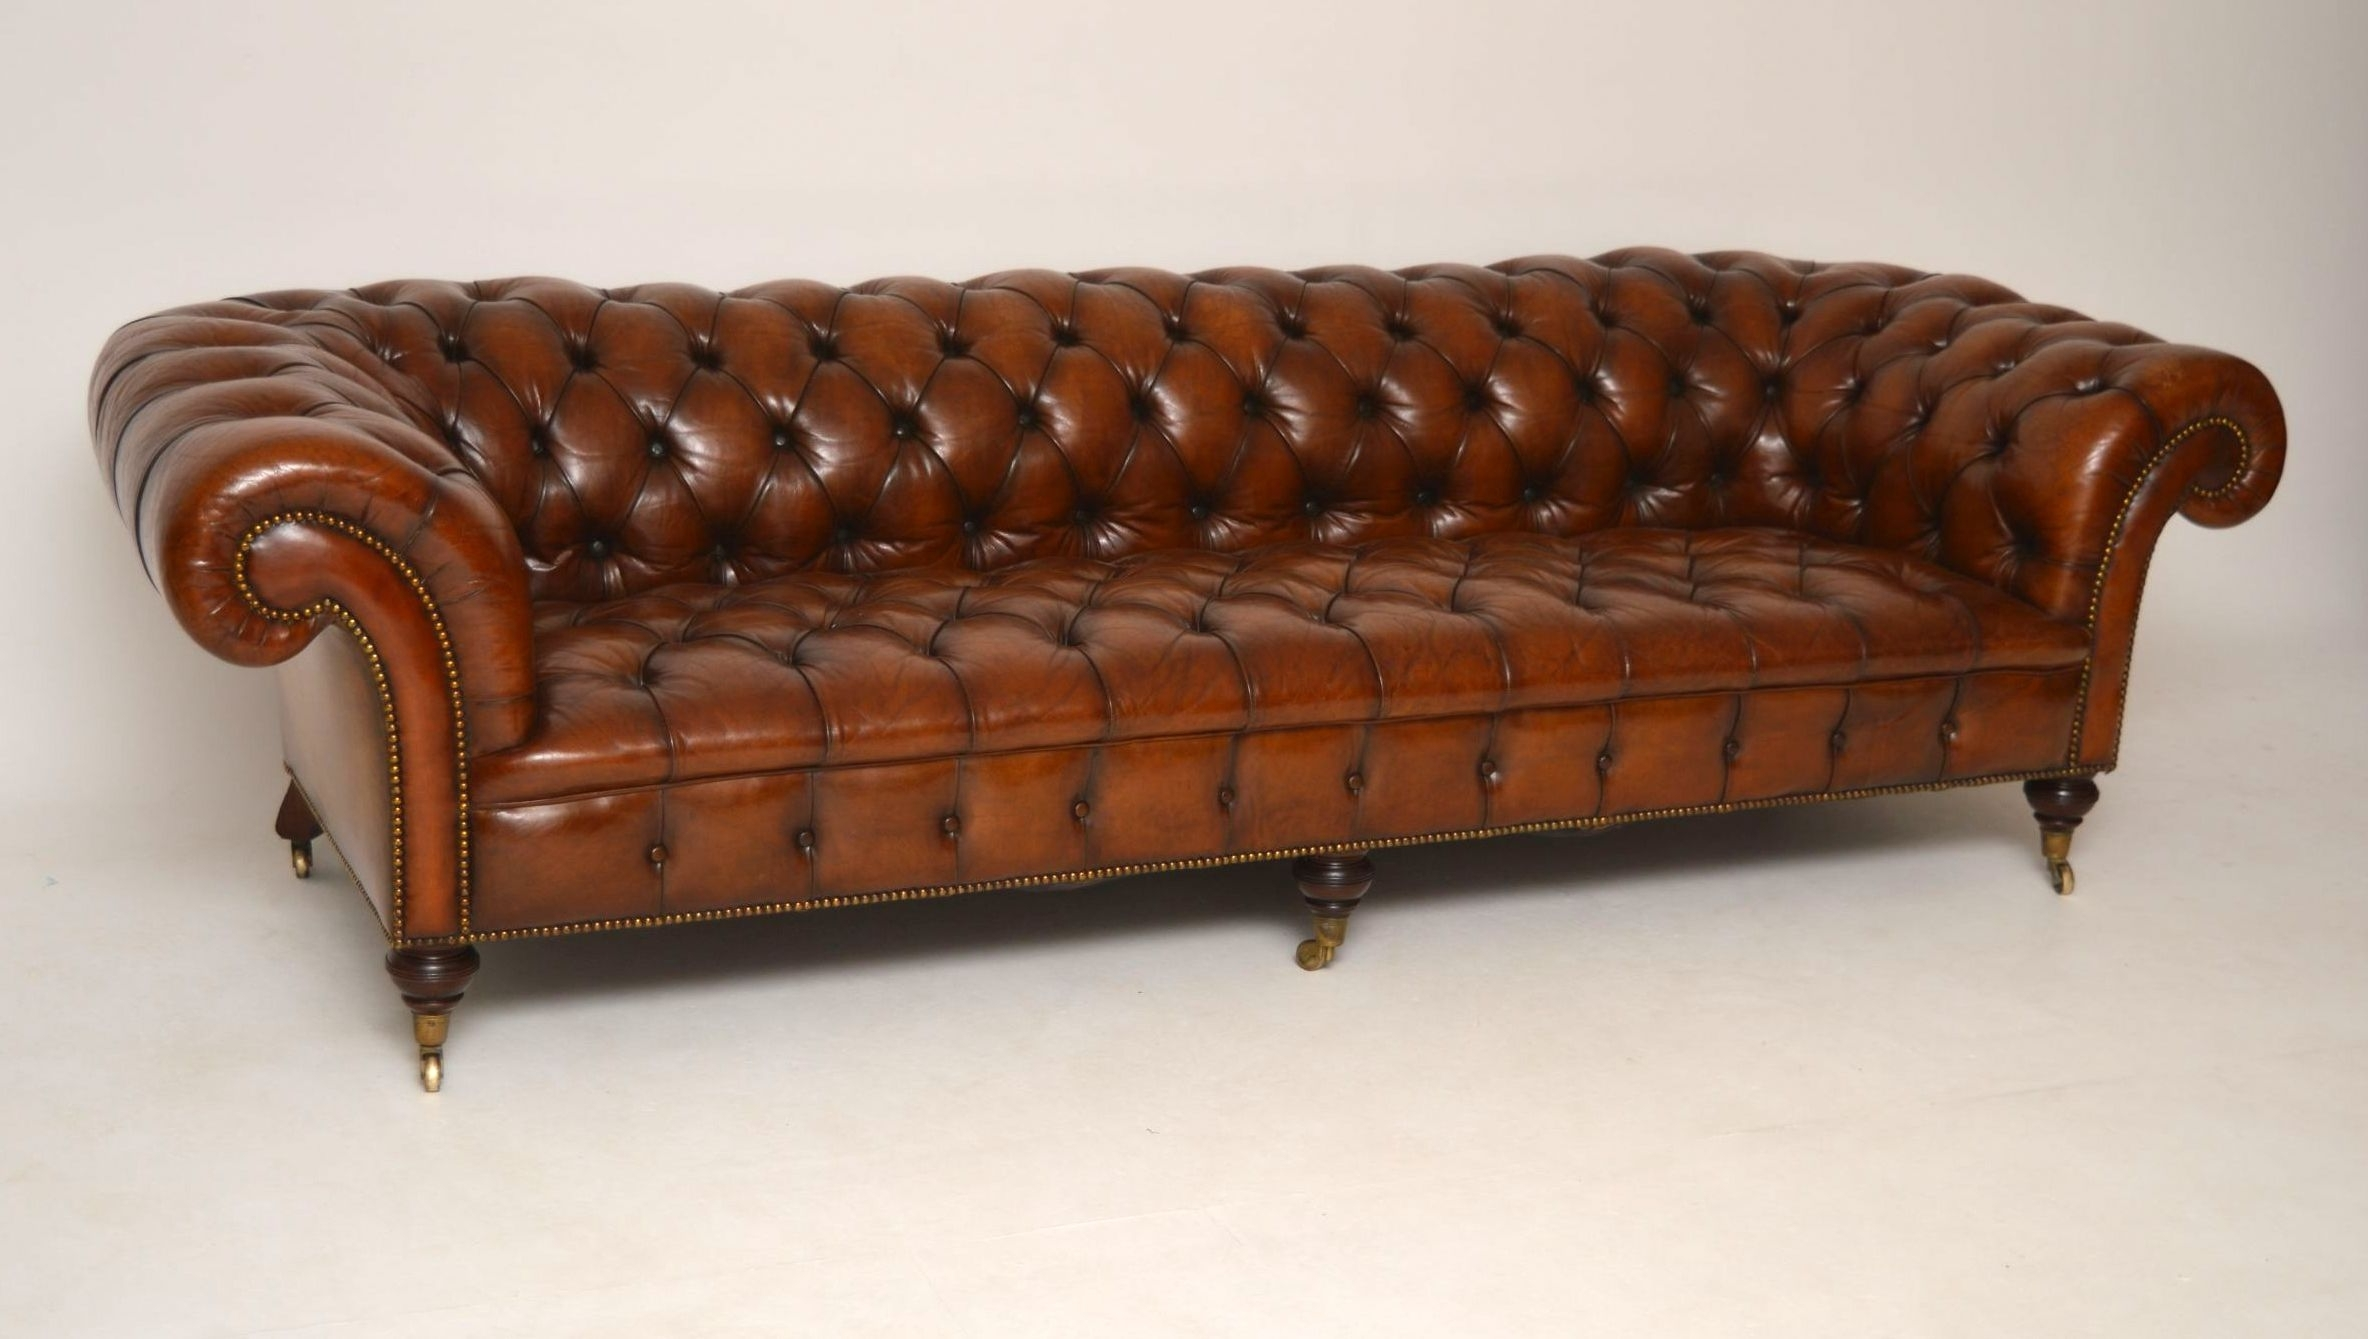 Well Liked Sofa : Victorian Sofa Antique Table Styles Value Settee Pertaining To Victorian Leather Sofas (View 4 of 15)